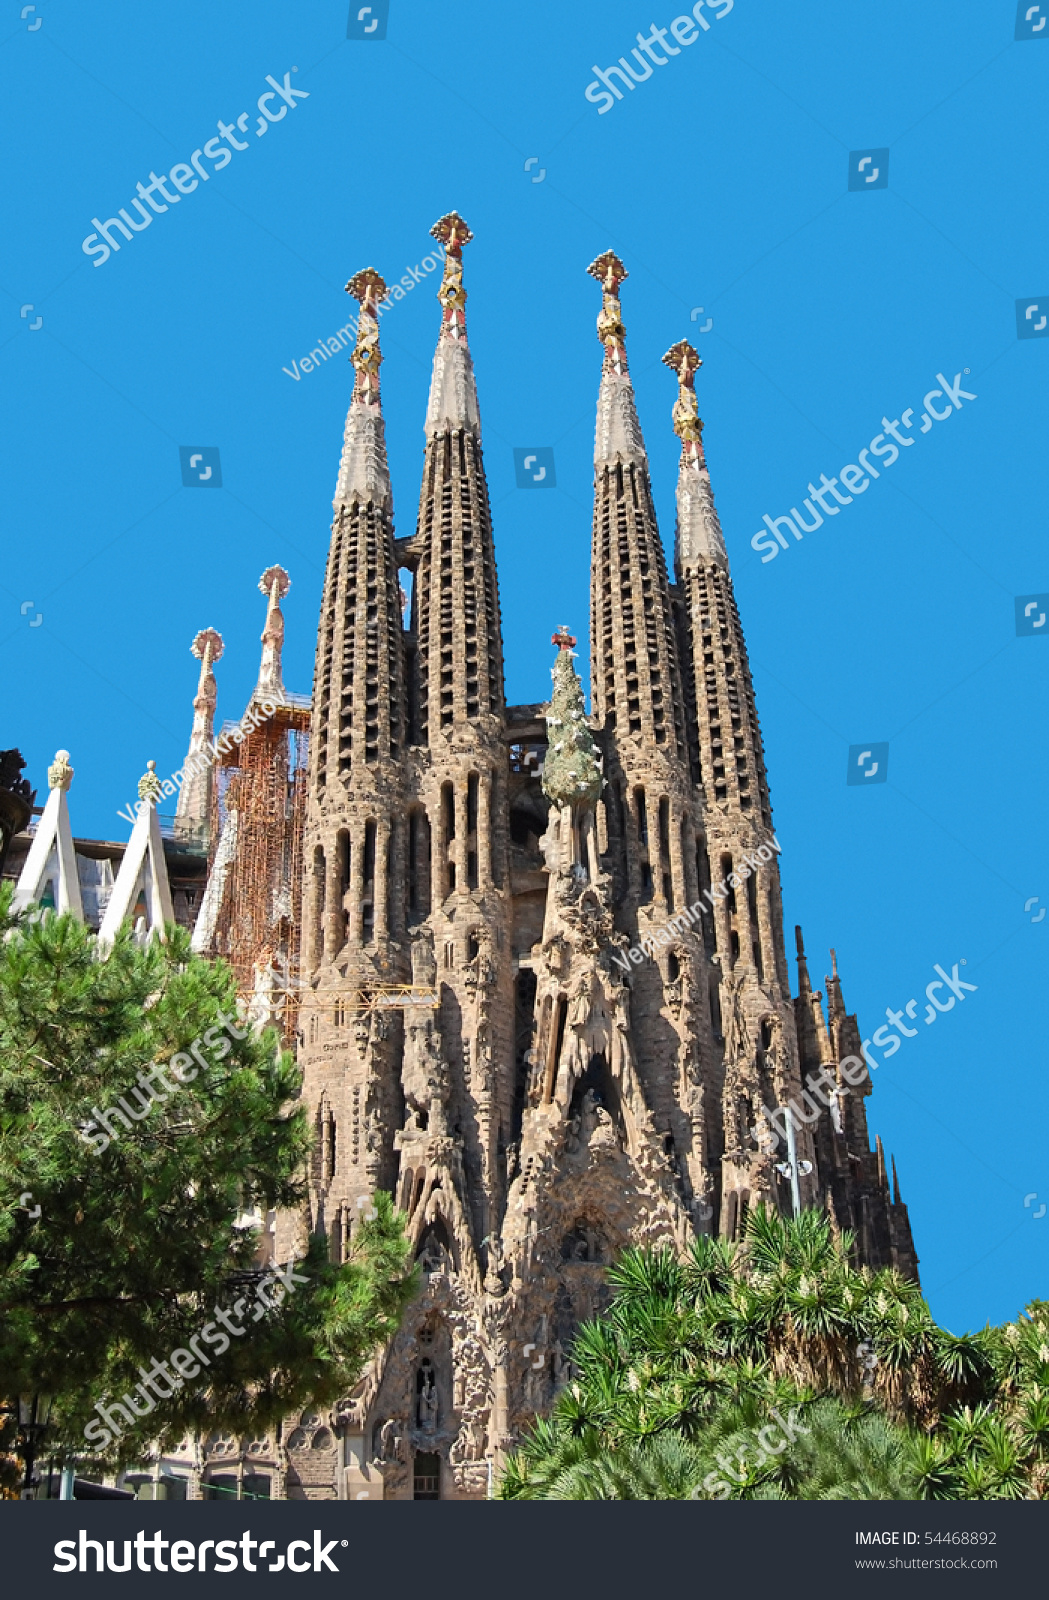 Barcelona, Spain - July 19: La Sagrada Familia - The Impressive Cathedral Des...